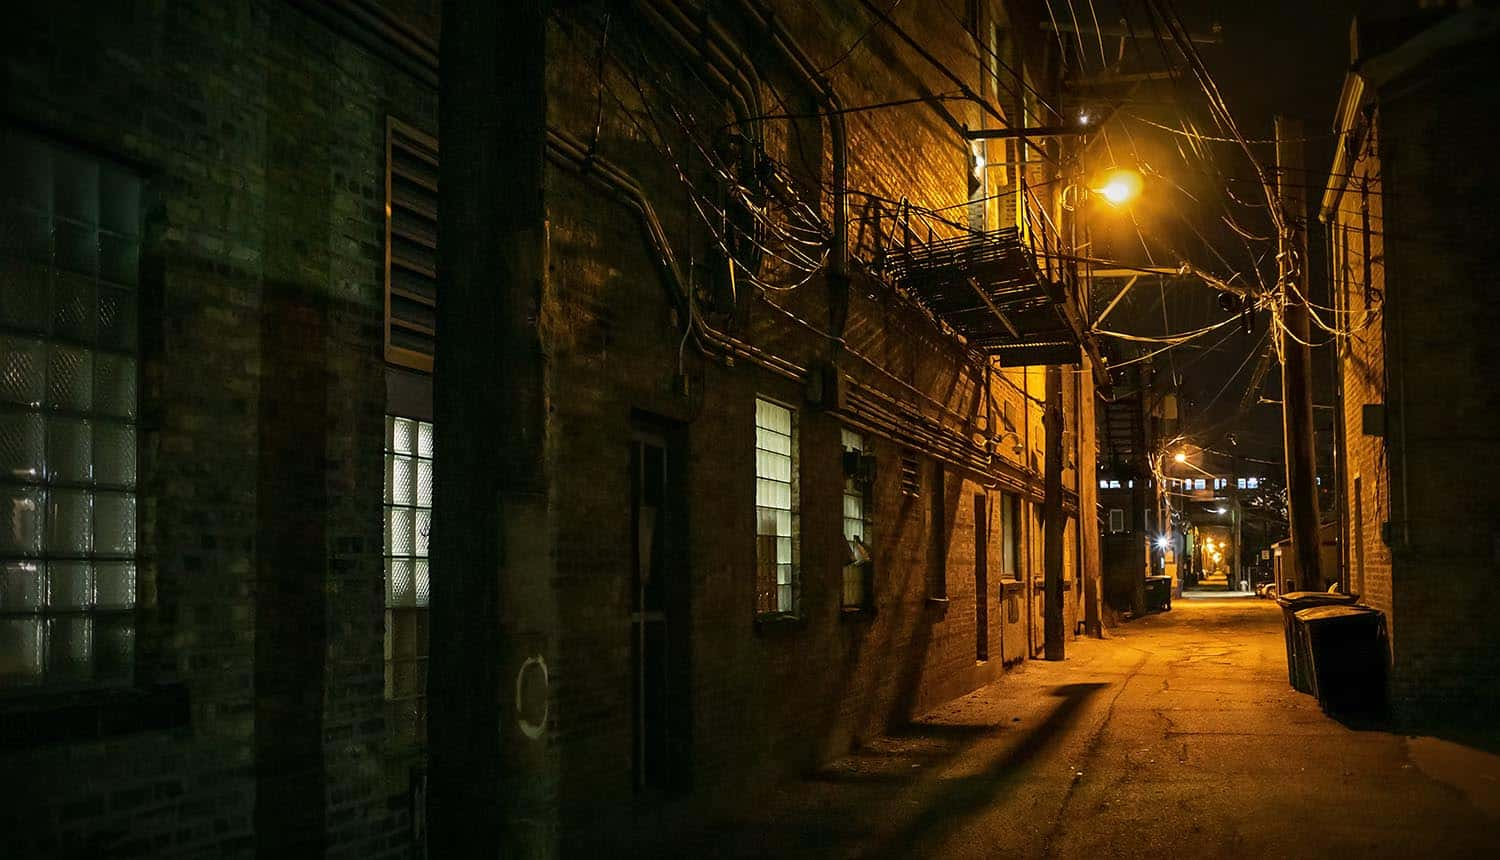 Vintage scary urban city alley at night showing REvil ransomware group retreating from dark web